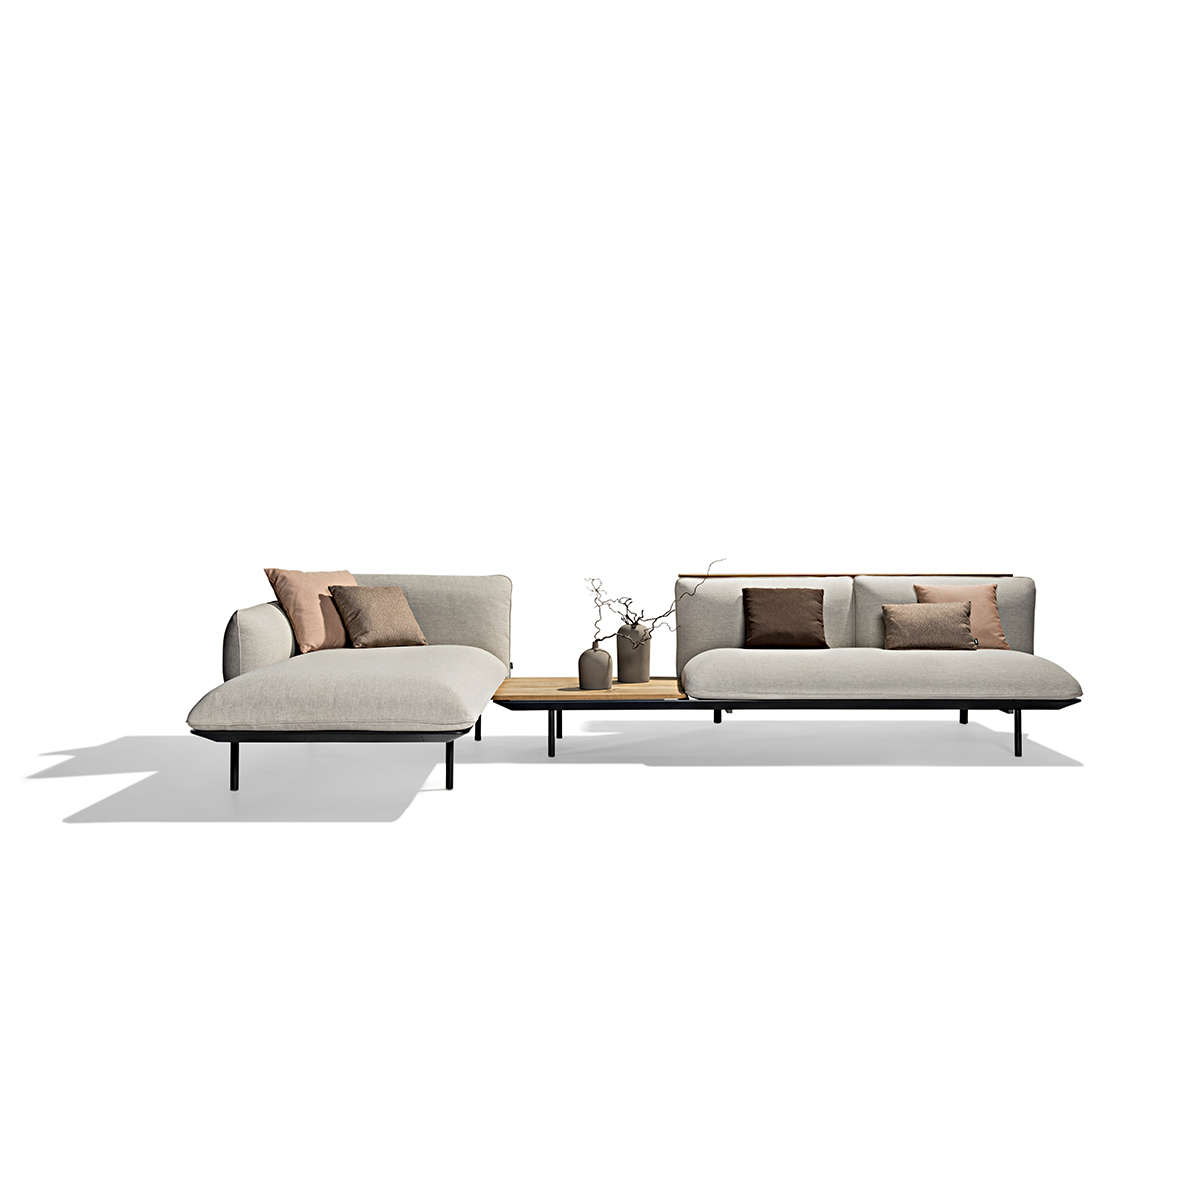 The Modern Garden Company Sofas Lounge Chairs